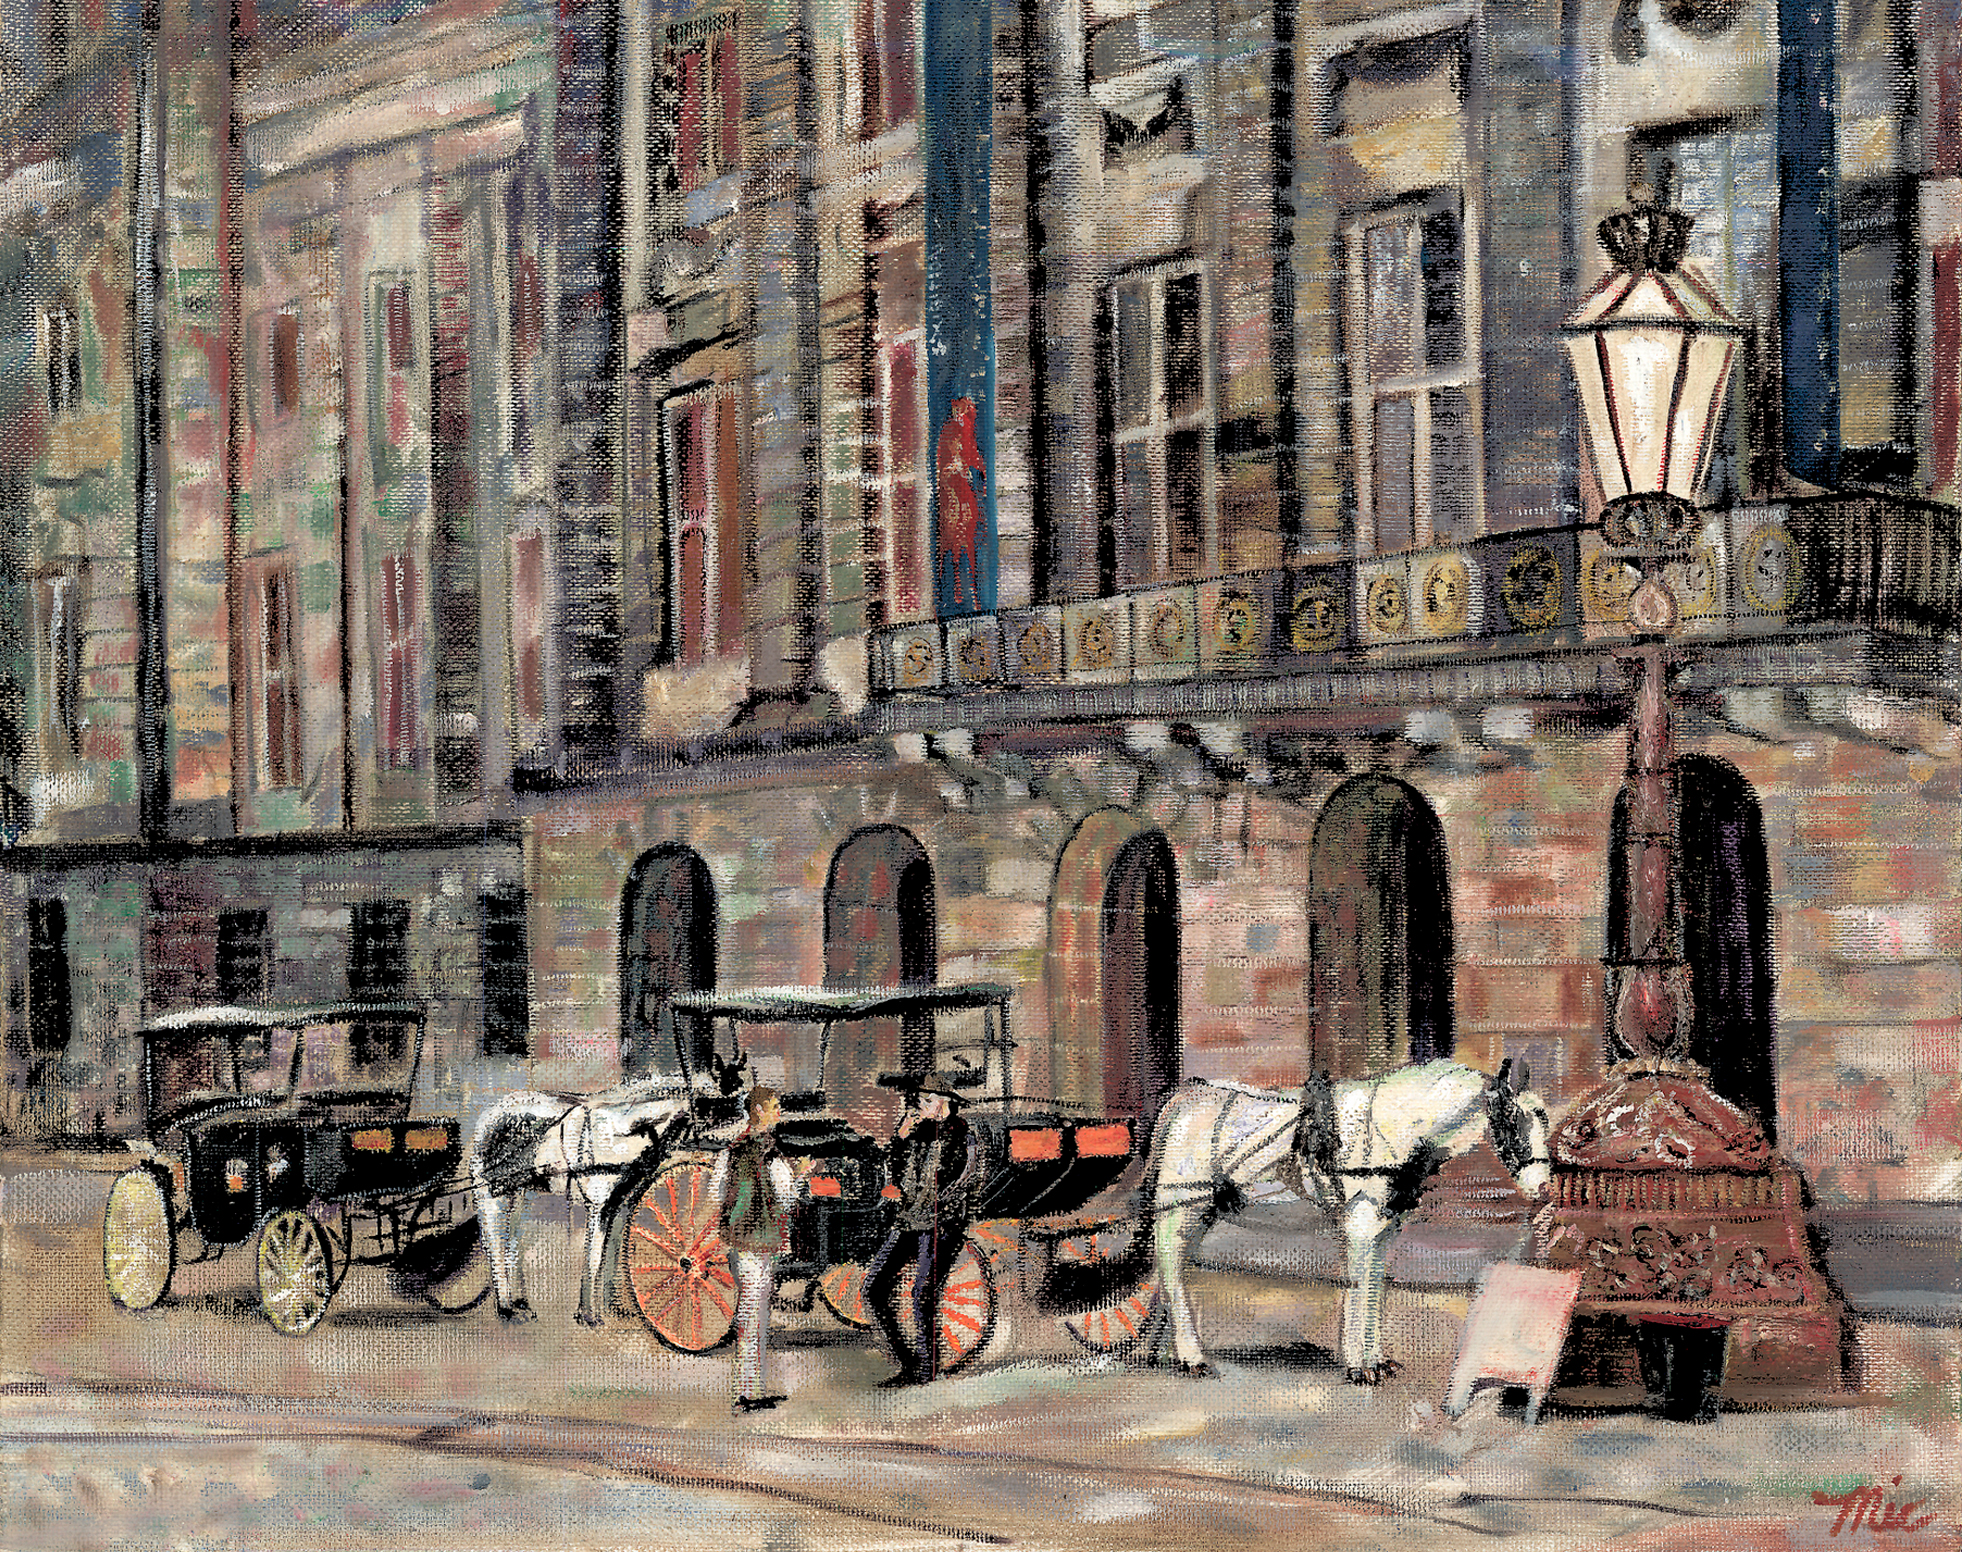 """Hansom Cab"" Amsterdam - Oil on panel, Private collection Gordy and Sue CarlsonGiclee Limited Edition and canvas prints are available. Please visit the prints gallery."